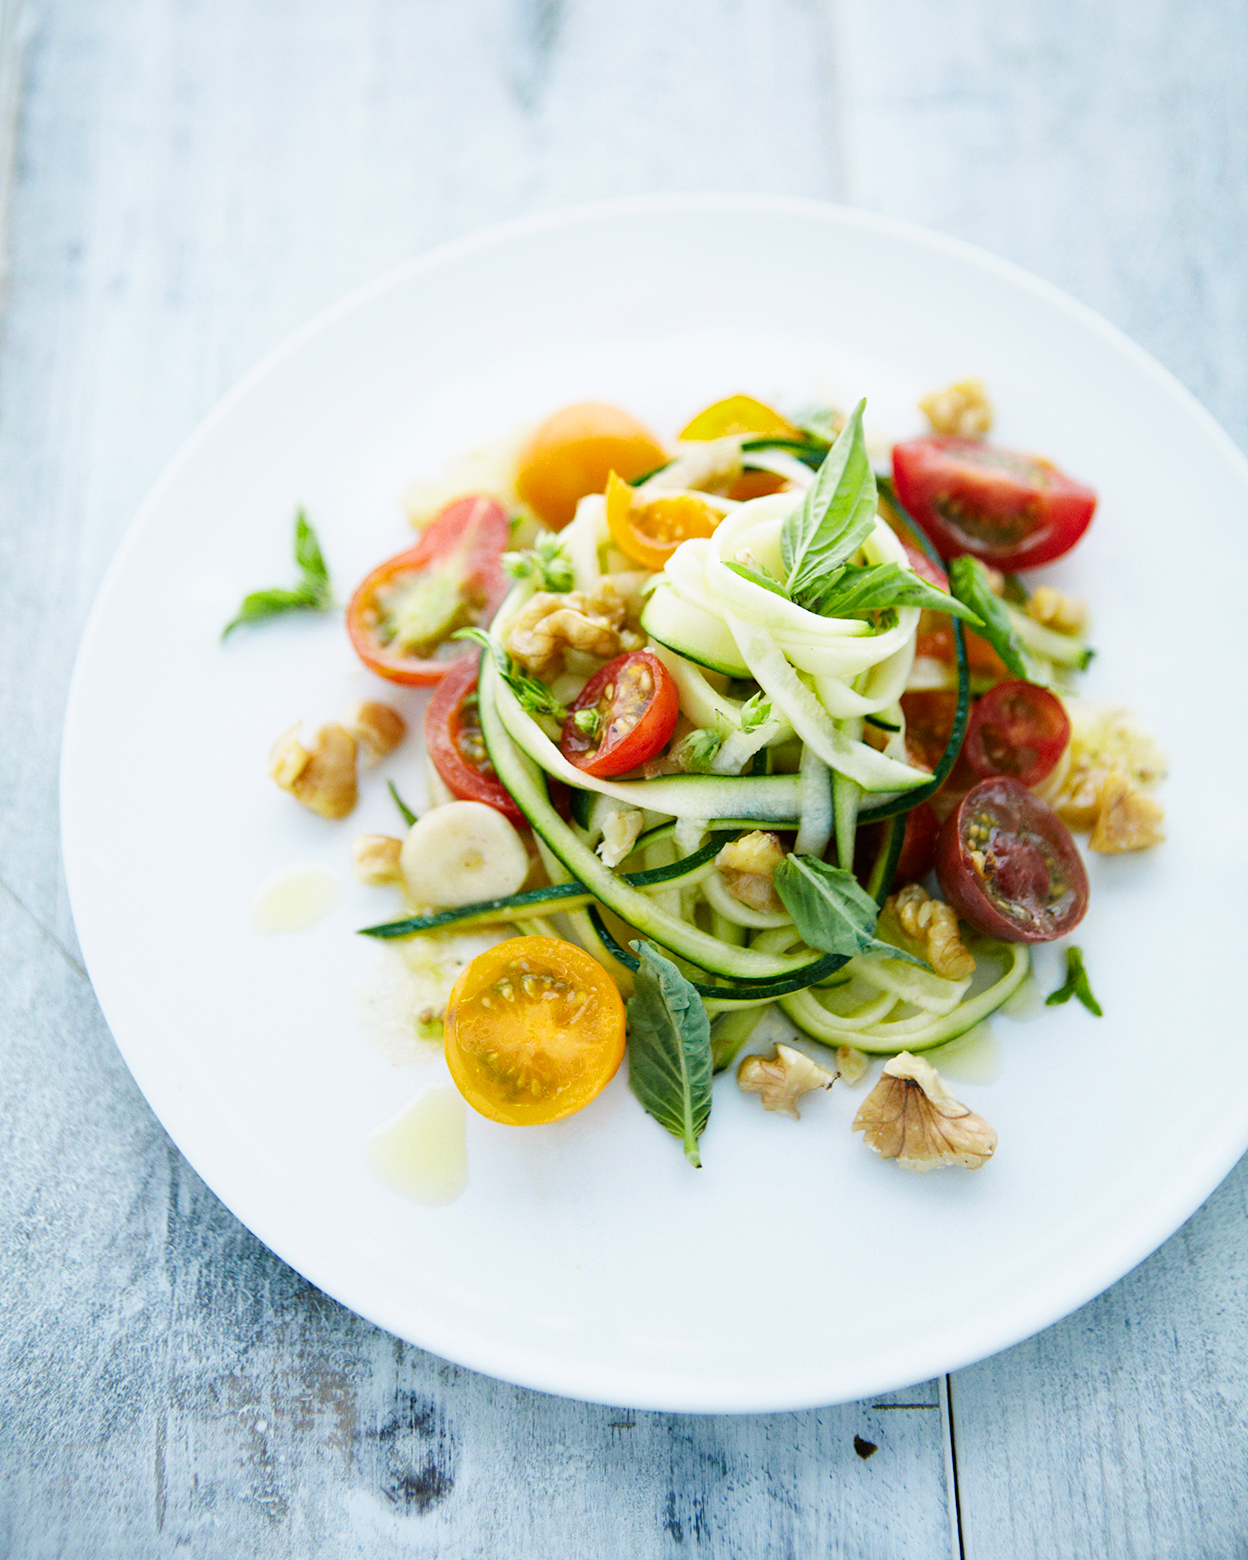 Zucchini Pasta with Tomatoes and Walnuts